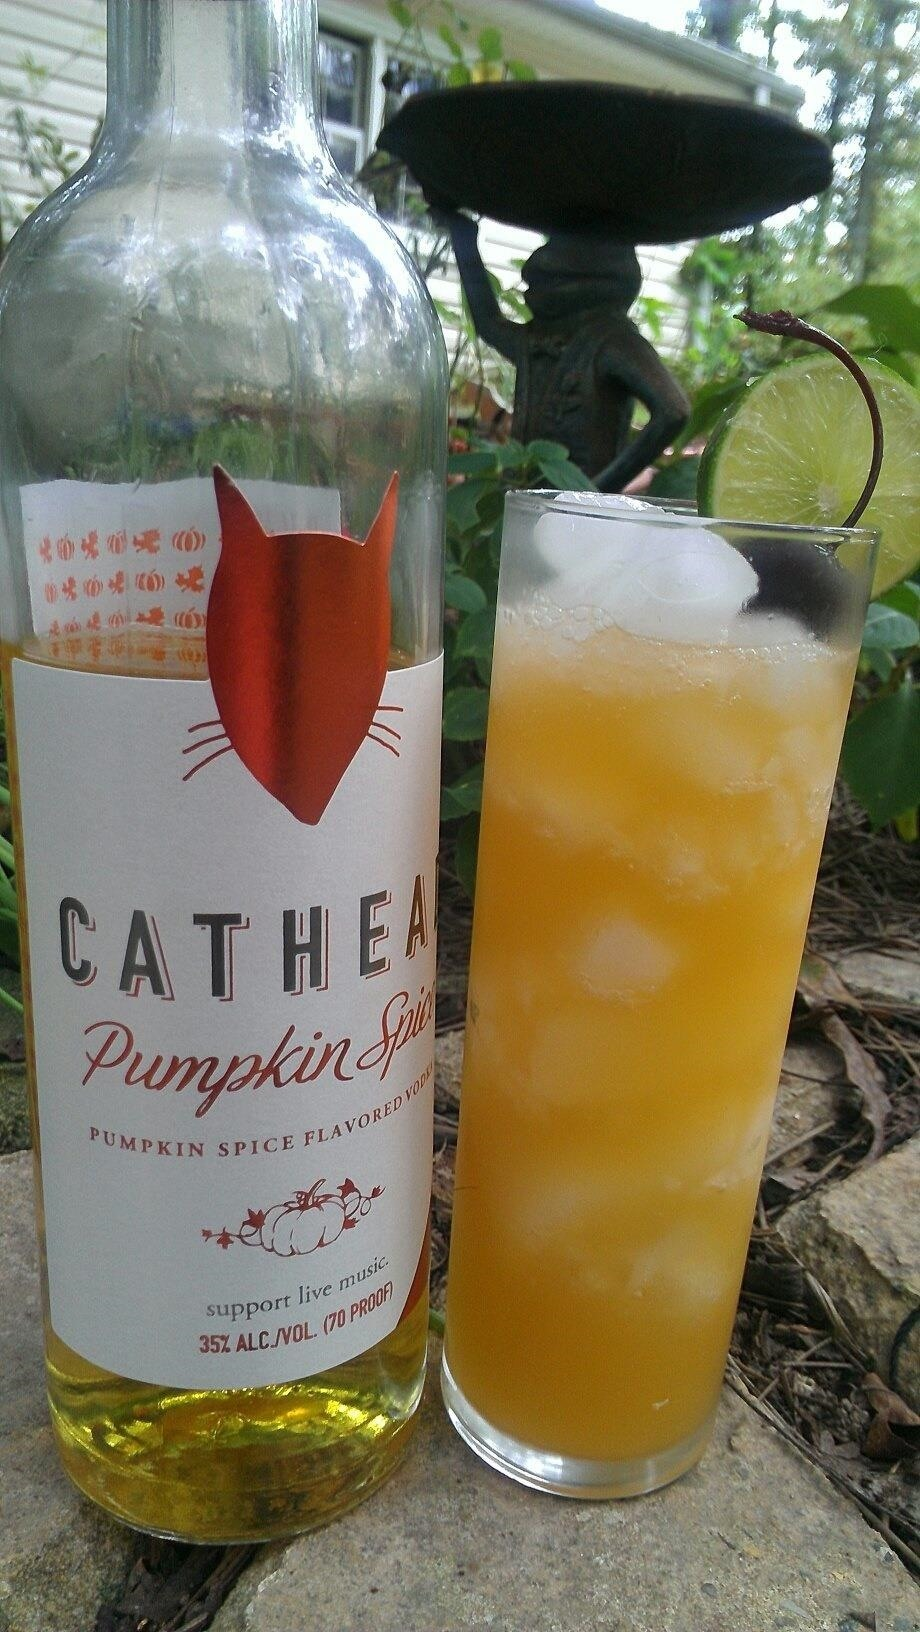 5 Boozy Pumpkin Spice Offerings That Will Leave You Feeling Warm & Fuzzy